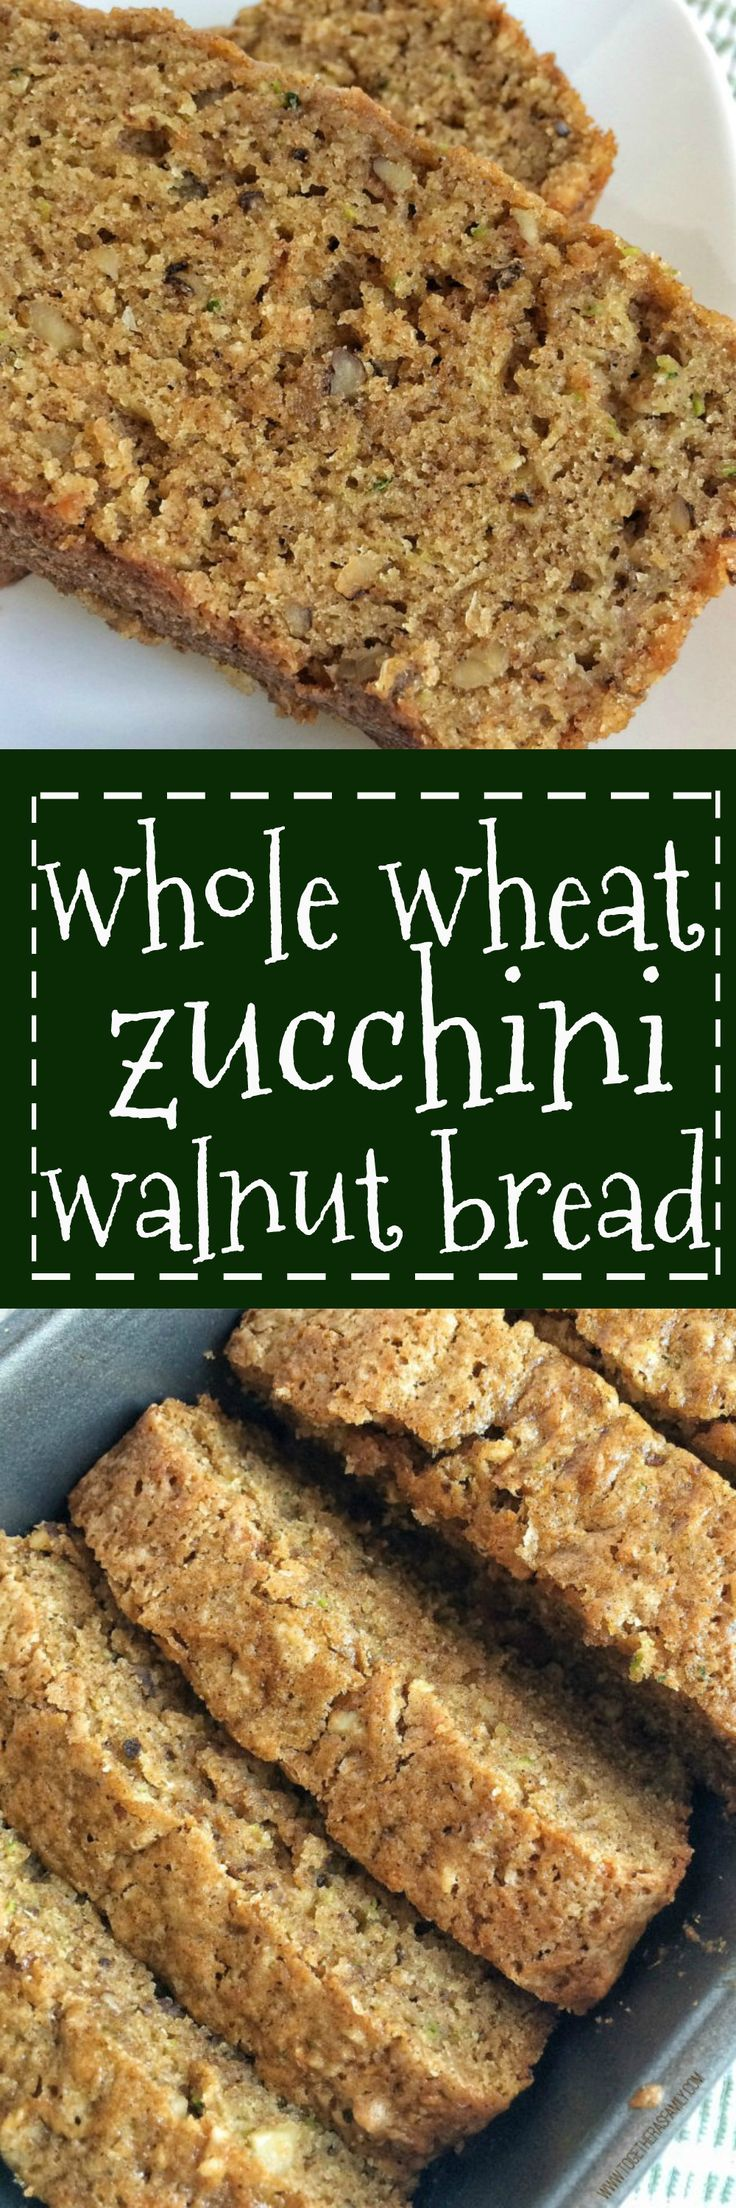 Whole wheat flour combined with 2 cups of shredded zucchini & chopped walnuts make this quick bread so moist, hearty, and delicious! Put all that garden zucchini abundance to good use or just take advantage of the low price of seasonal produce, like zucchini!